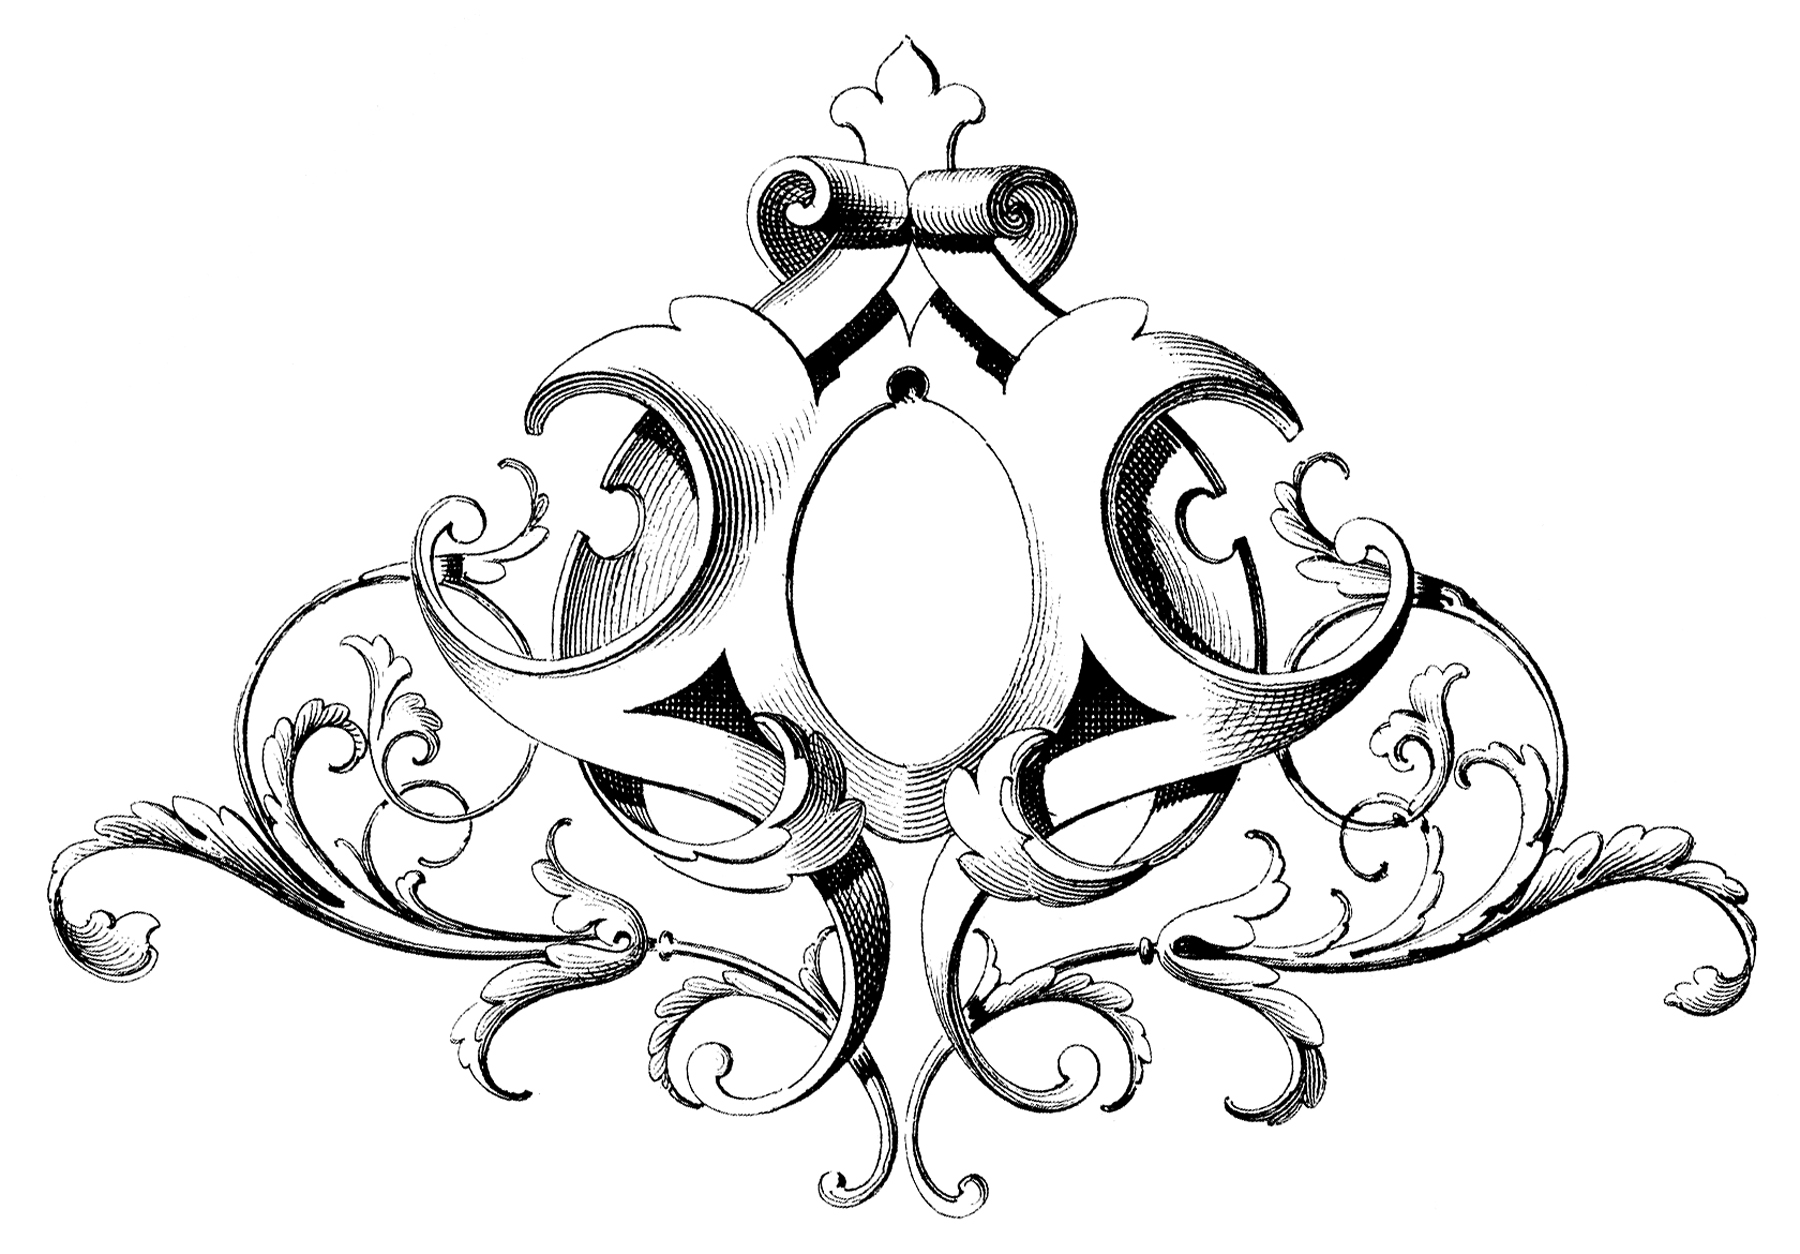 Fabulous Scrolls Frame Ornament! - The Graphics Fairy